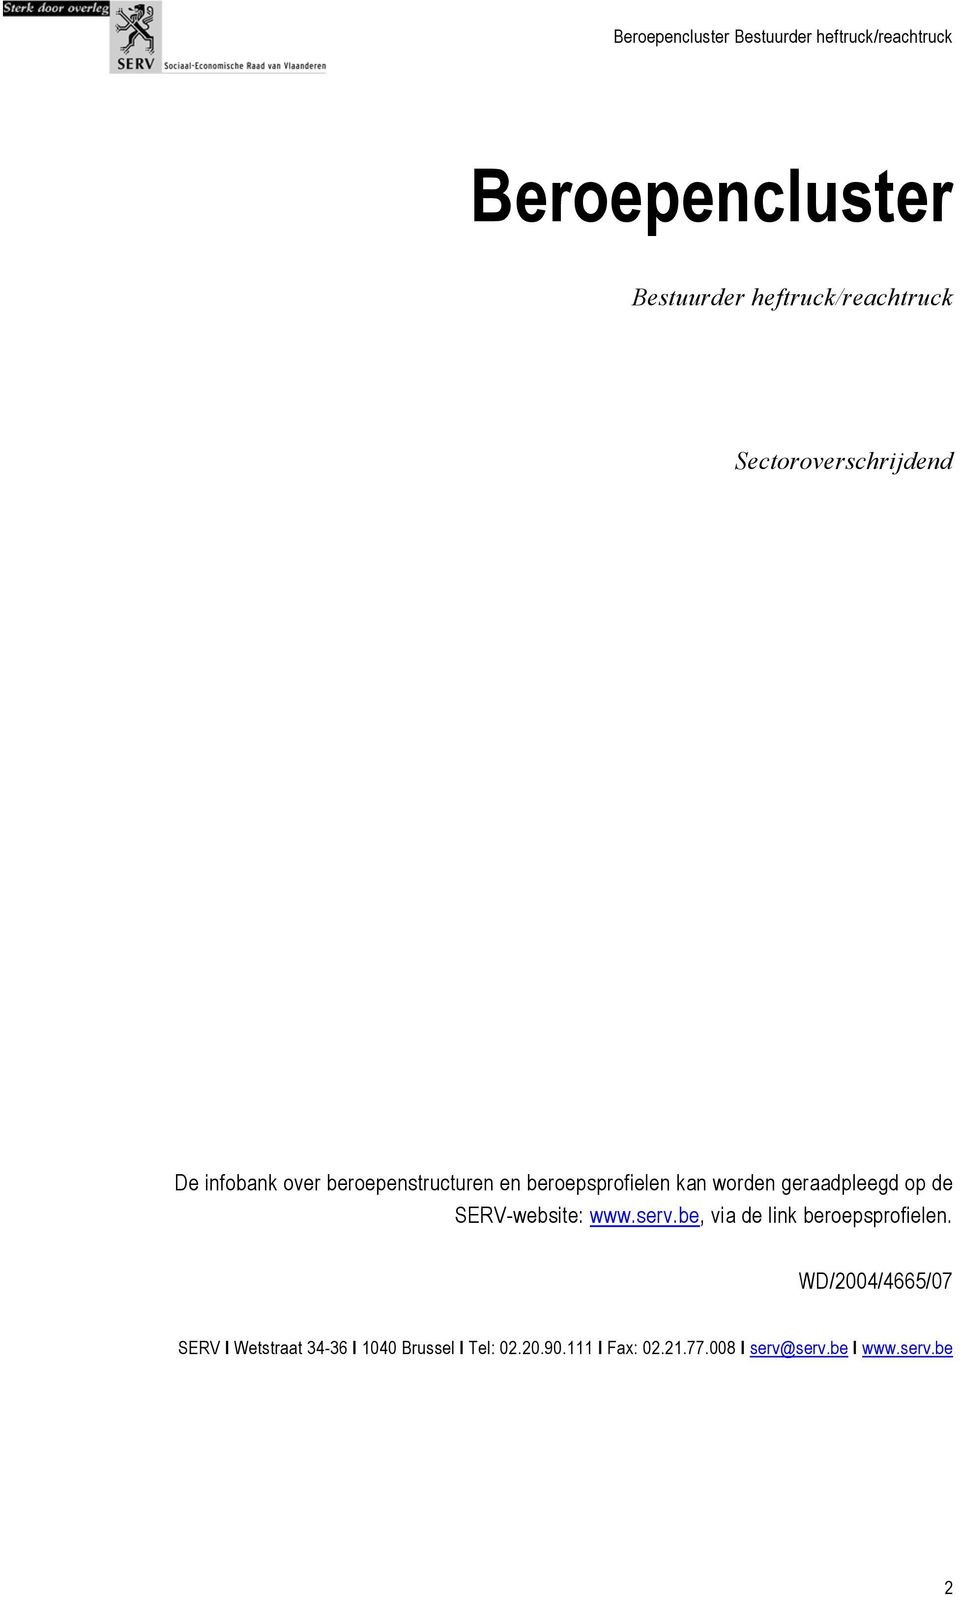 SERV-website: www.serv.be, via de link beroepsprofielen.